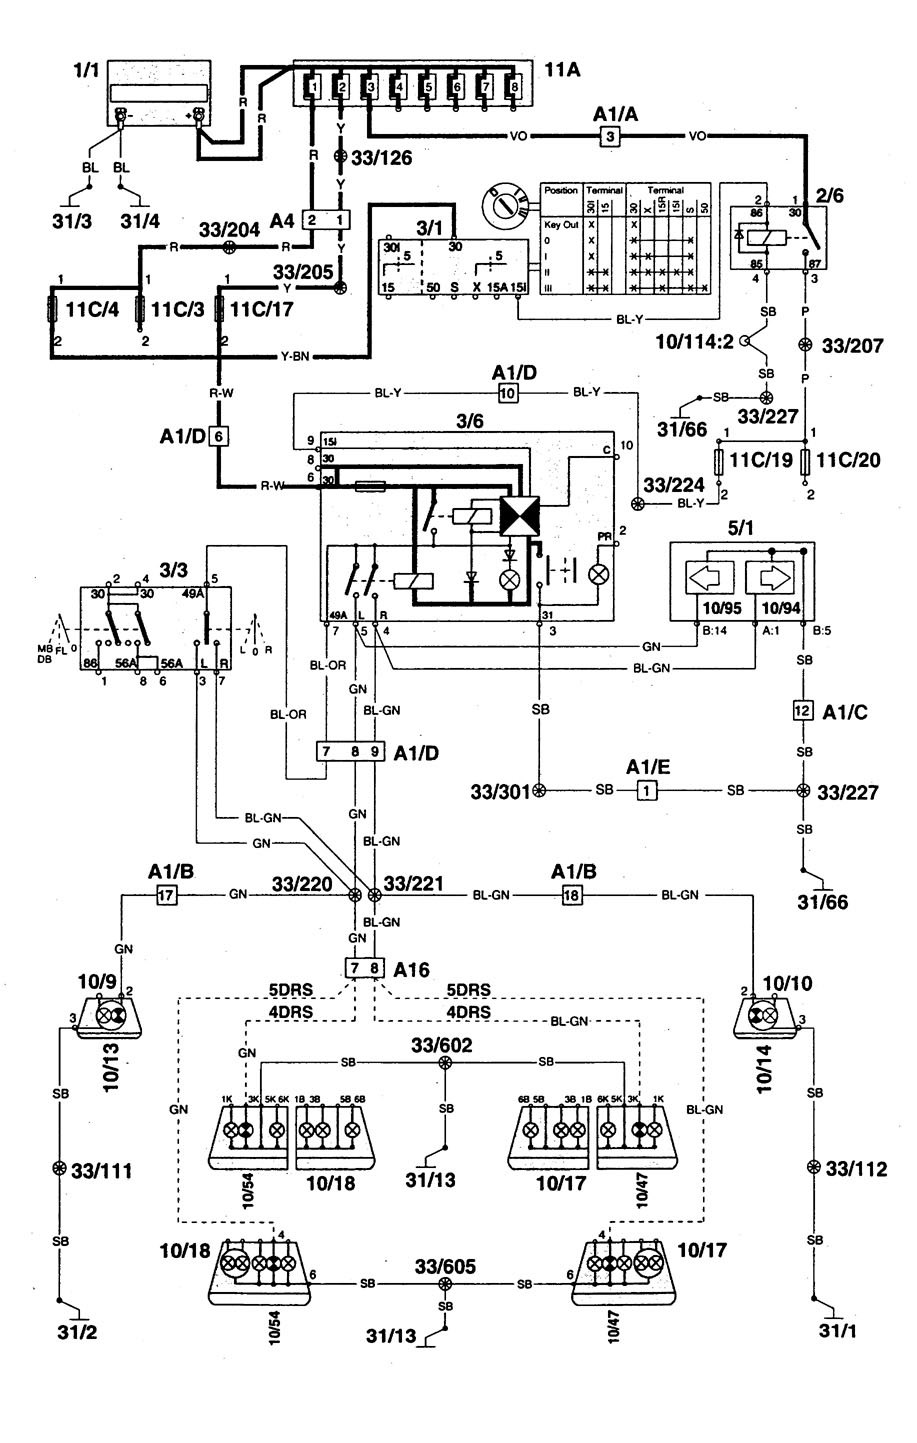 1995 Volvo 960 Wiring Diagram Great Design Of Radio Diagrams Turn Signal Lamp 1998 S70